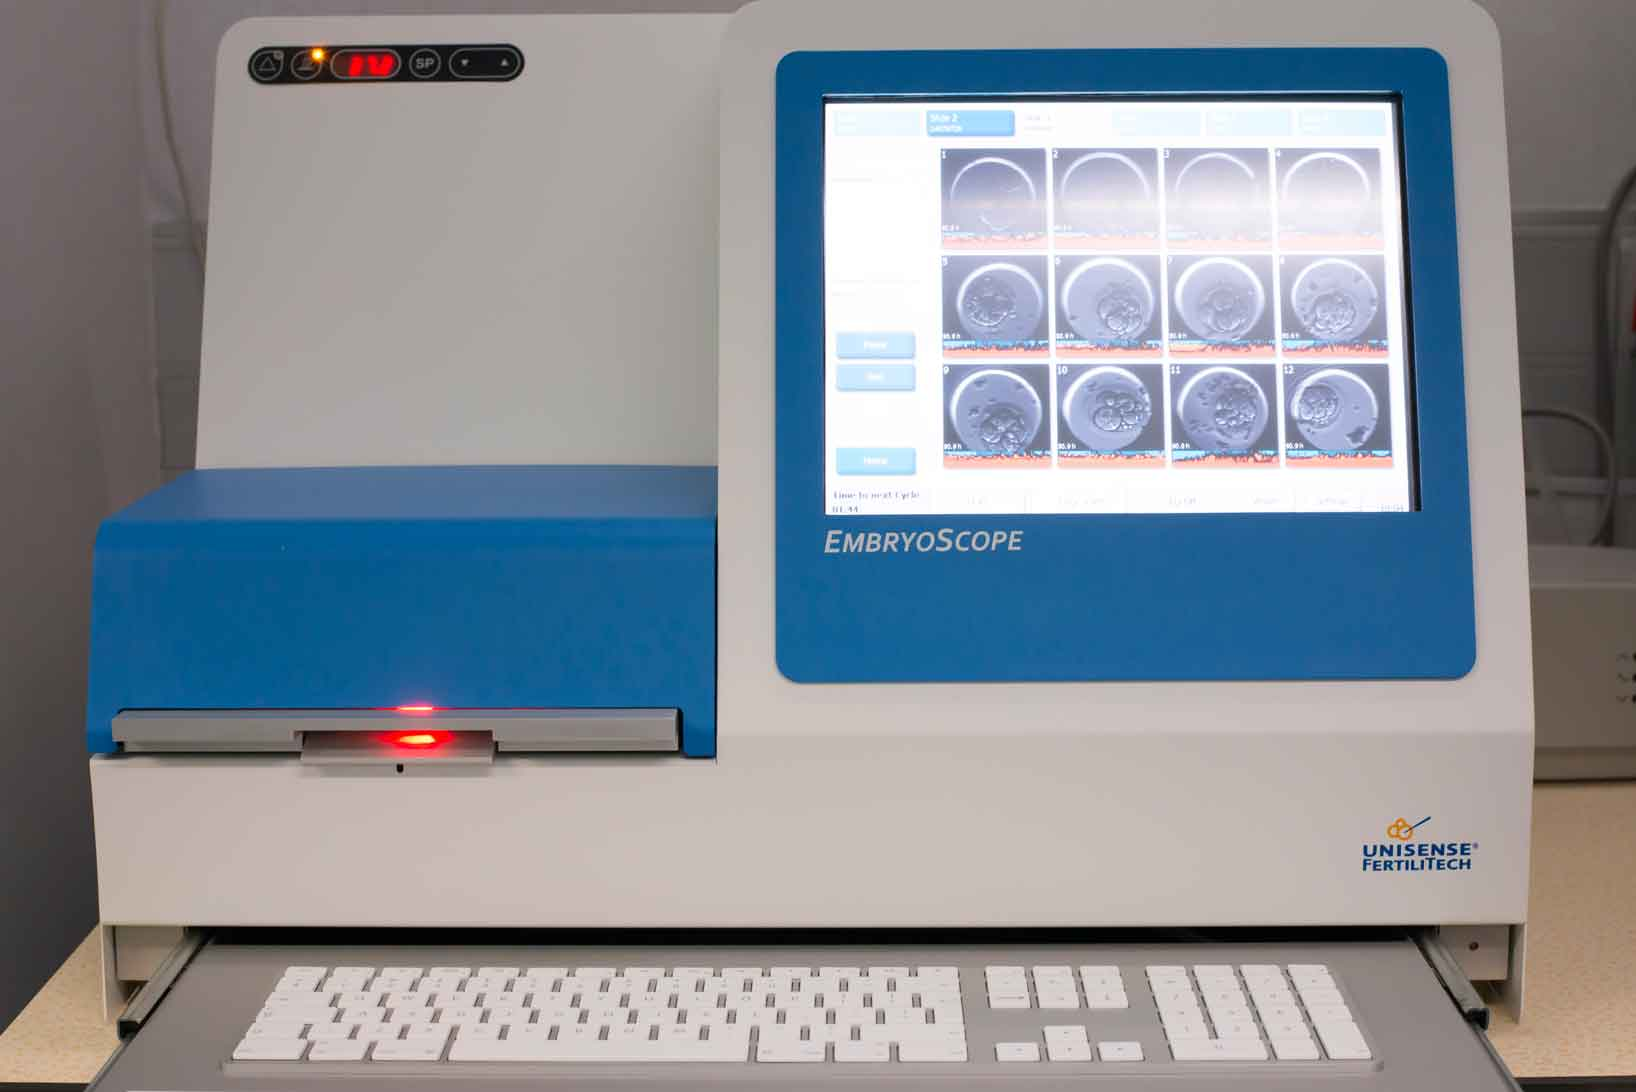 embryoscope-instituto-europeo-de-fertilidad.jpg